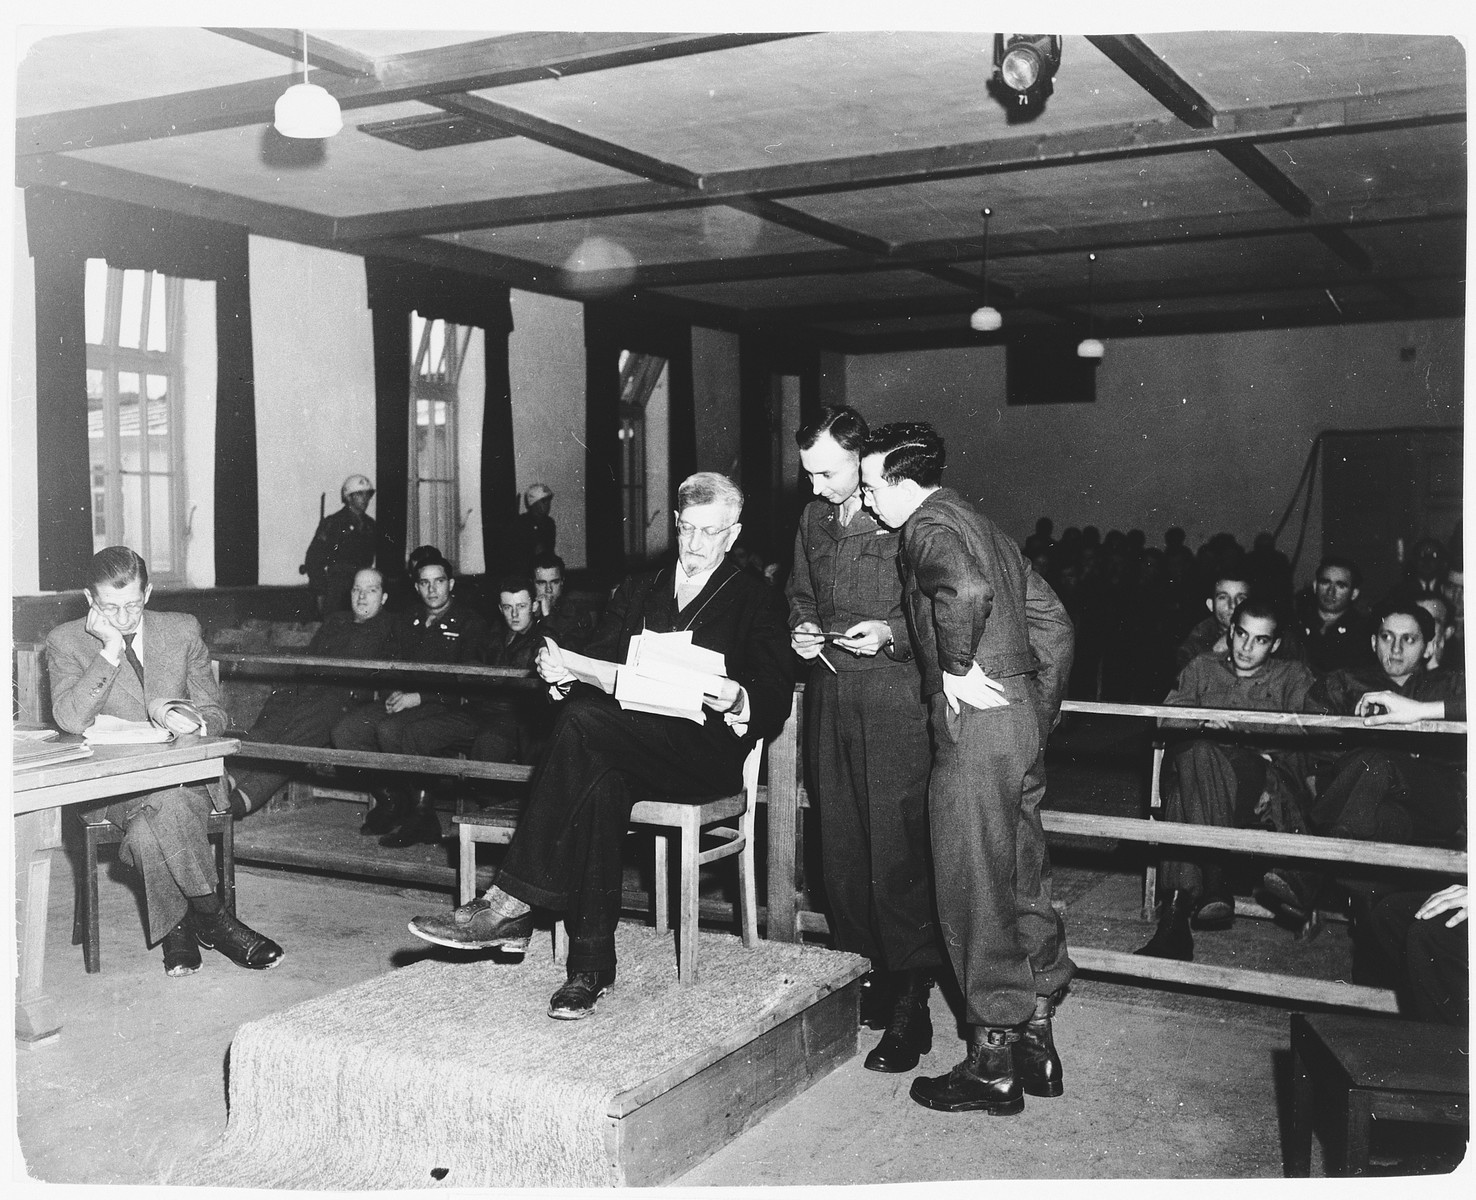 Defendant Dr. Klaus Schilling examines evidence on the stand in the Dachau trial.  He was responsible for performing malarial experiments on patients and was hanged in May 1946.